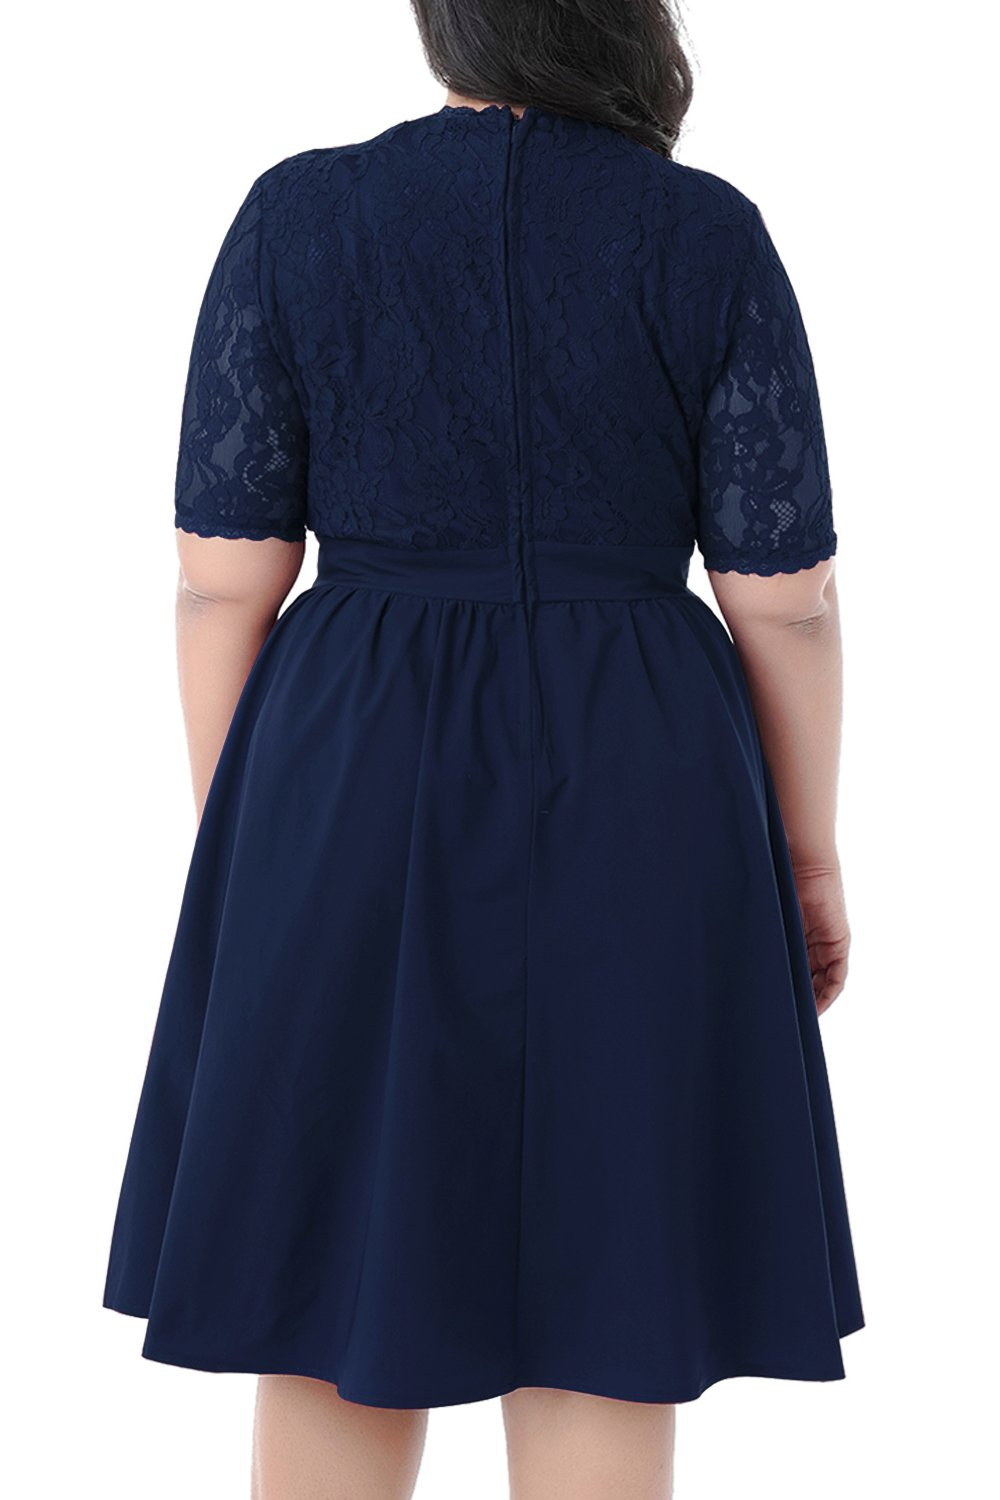 Nemidor Women's Half Sleeves V-Neckline Lace Top Plus Size Cocktail Party Swing Dress (Navy, 20W) by Nemidor (Image #3)